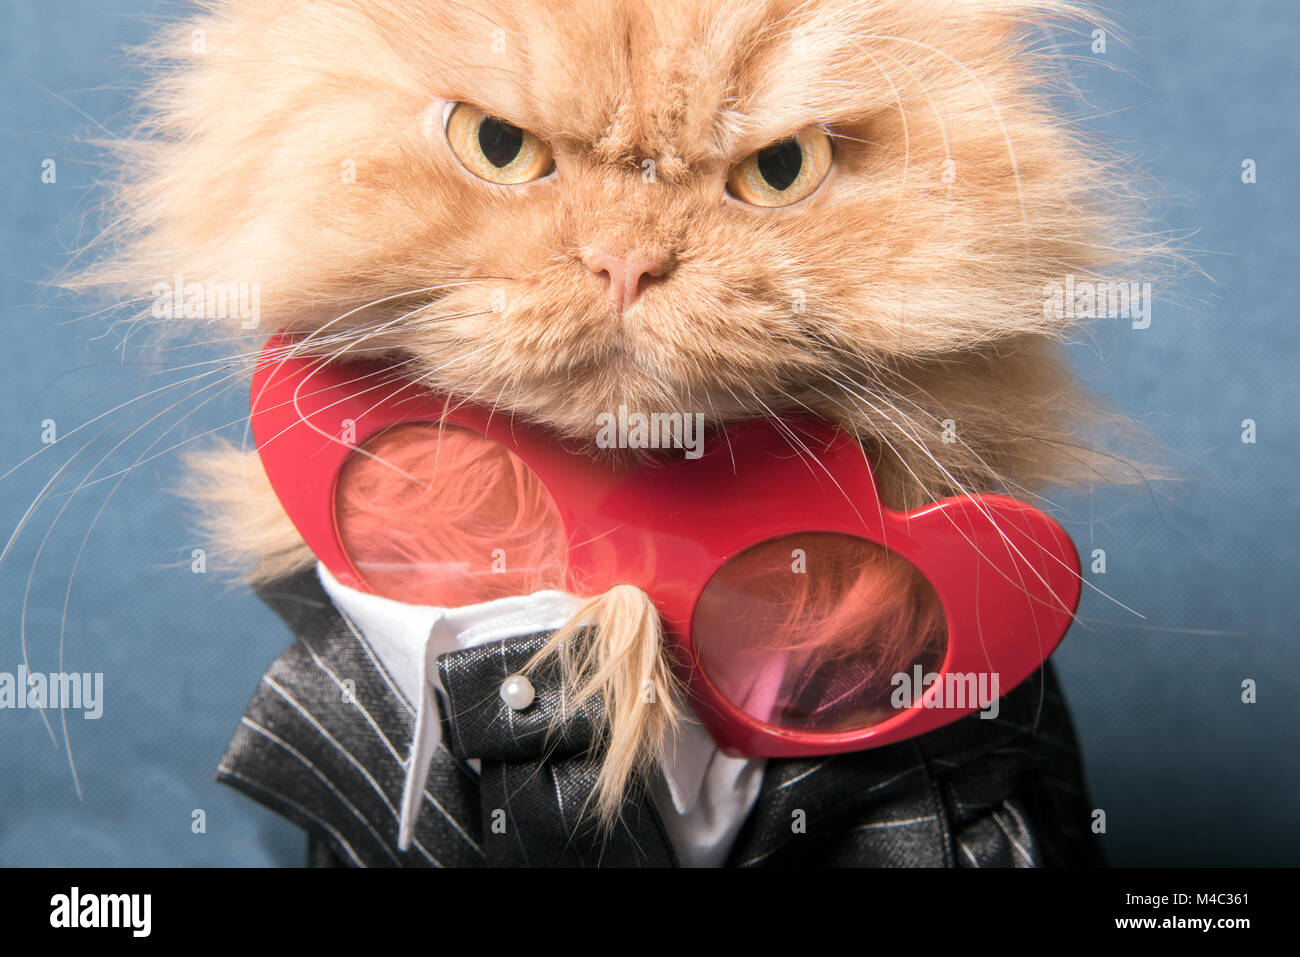 Close up portrait of orange Persian cat with heart shape glasses - Stock Image